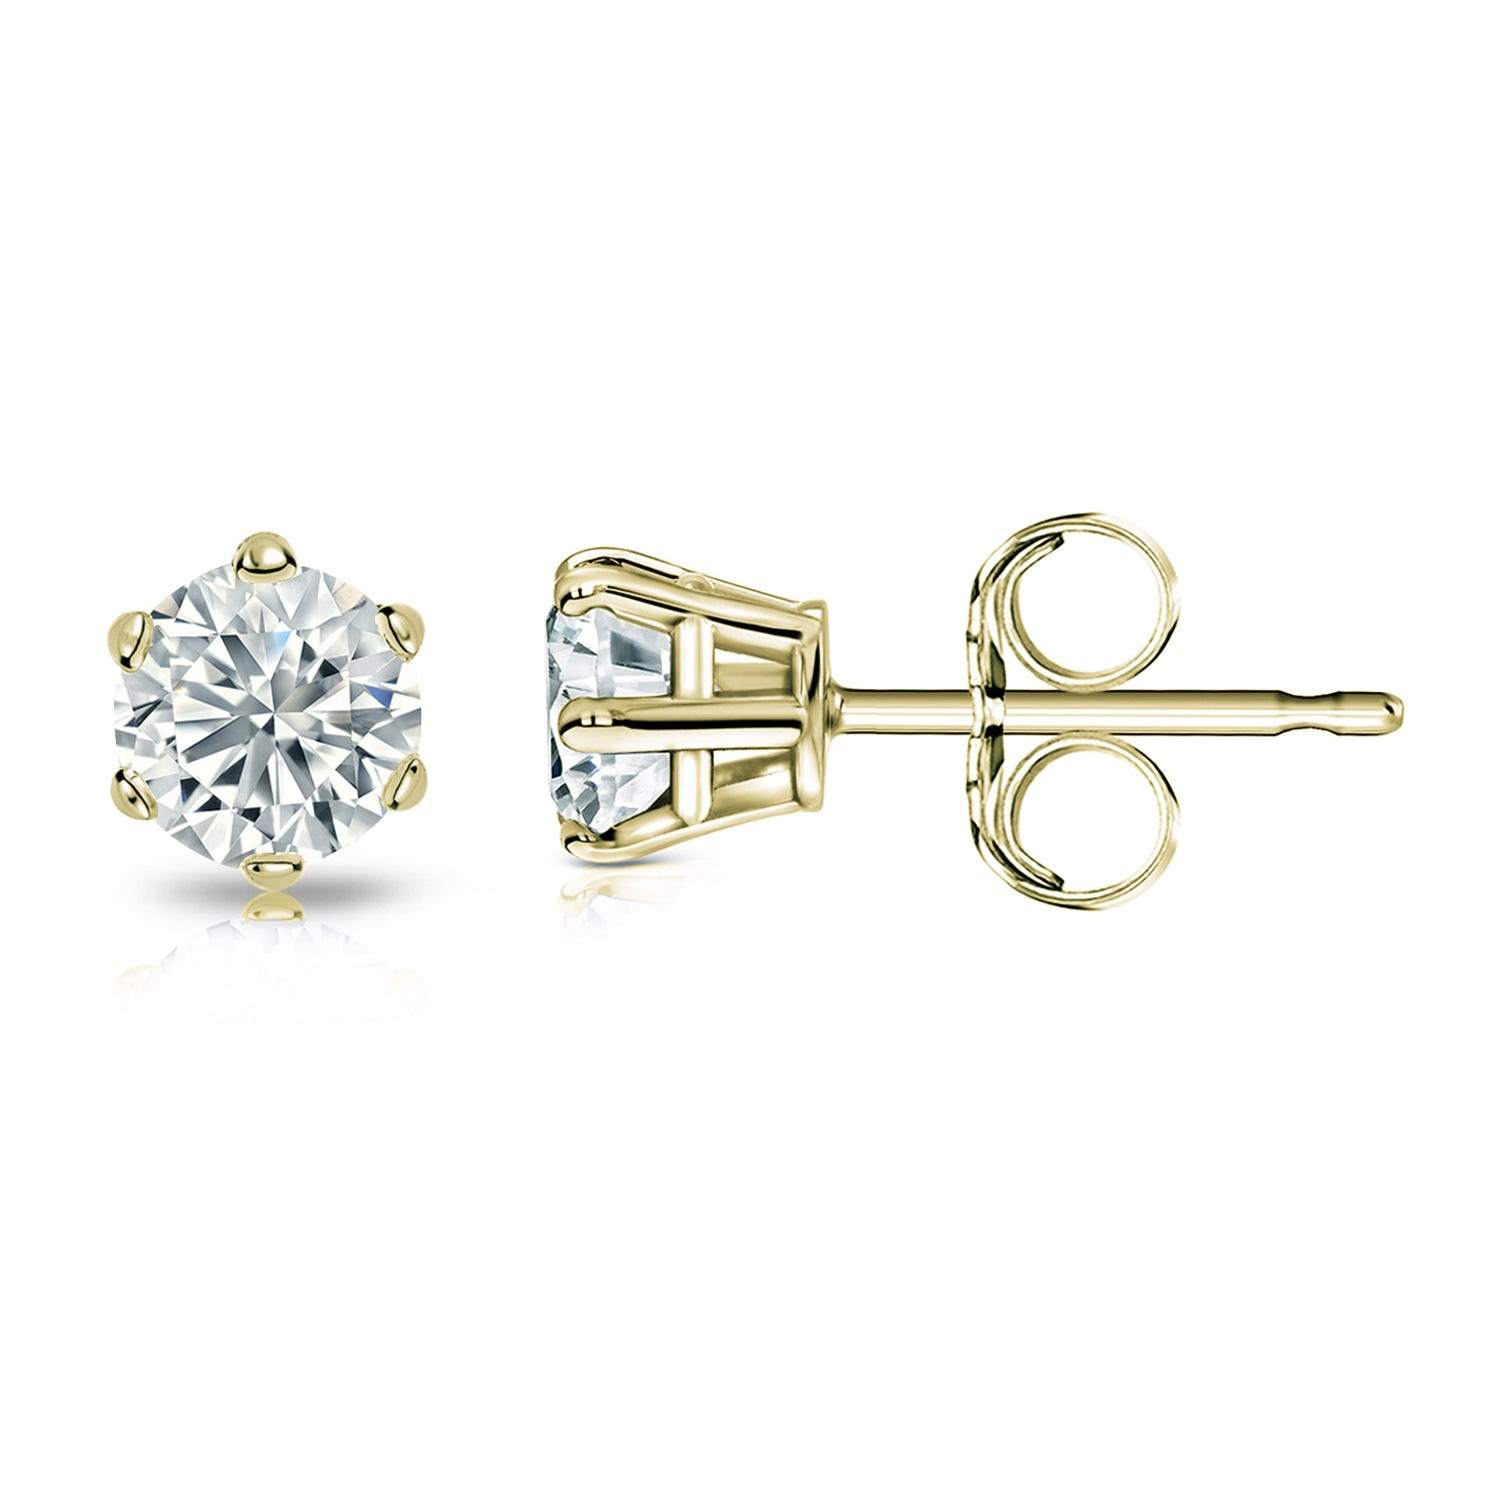 Round Diamond 5/8ctw. (IJ-VS2) Solitaire Stud 6-Prong Earrings in 14K Yellow Gold